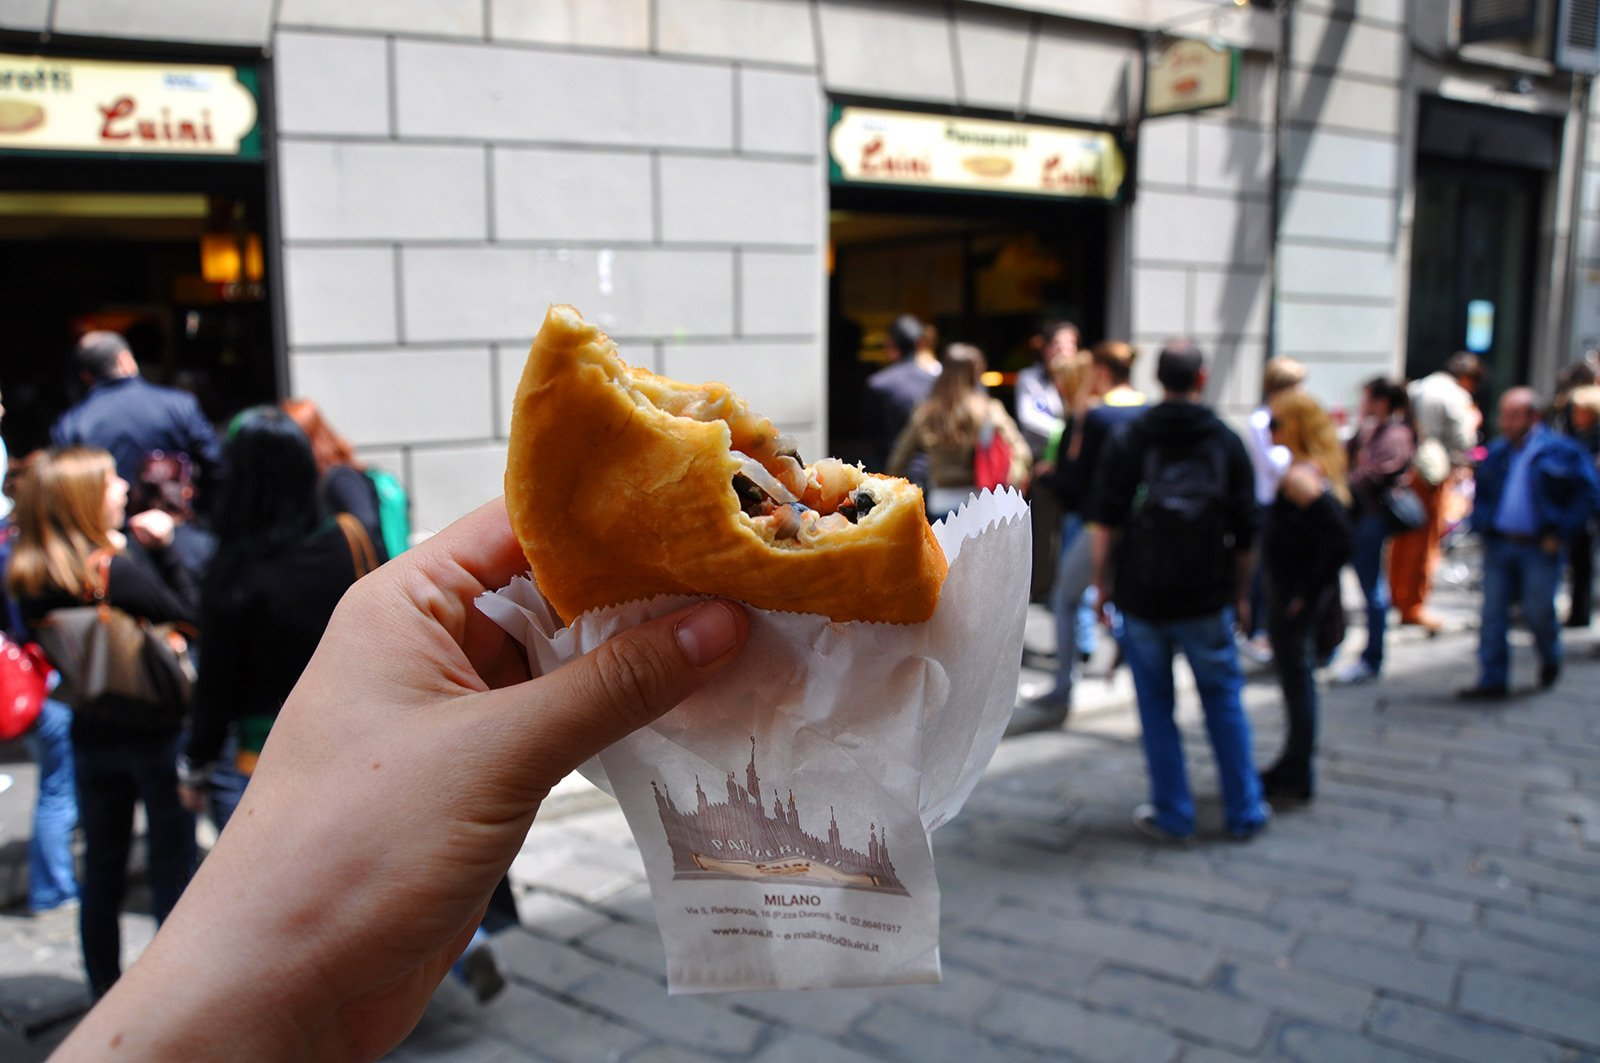 How to try panzerotti by Luini in Milan